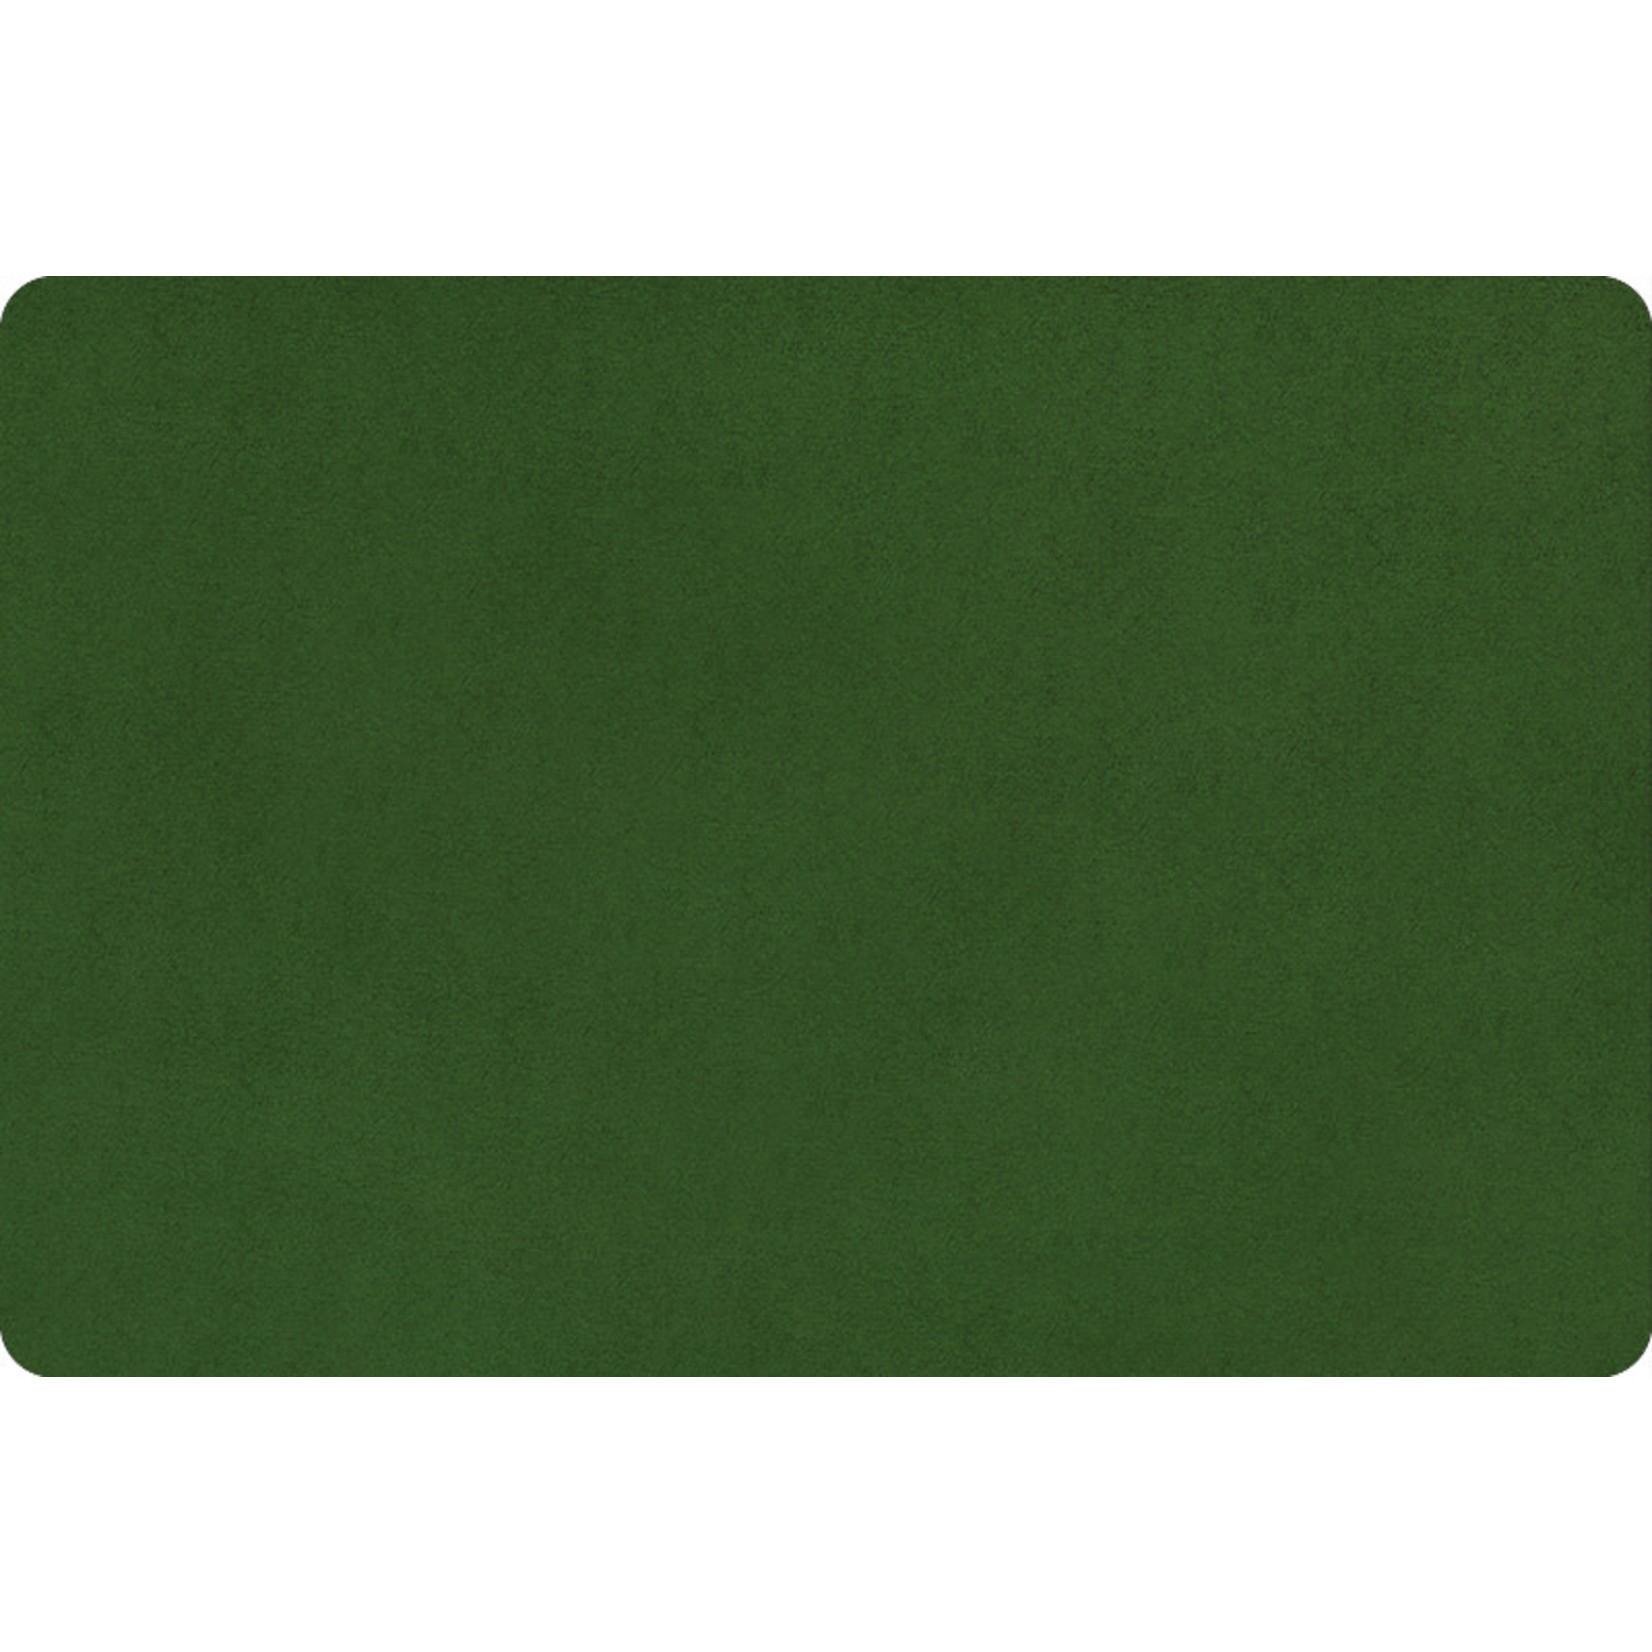 """Shannon Fabrics Minky, Extra Wide Solid Cuddle3, 90"""" Evergreen, (by the inch)"""